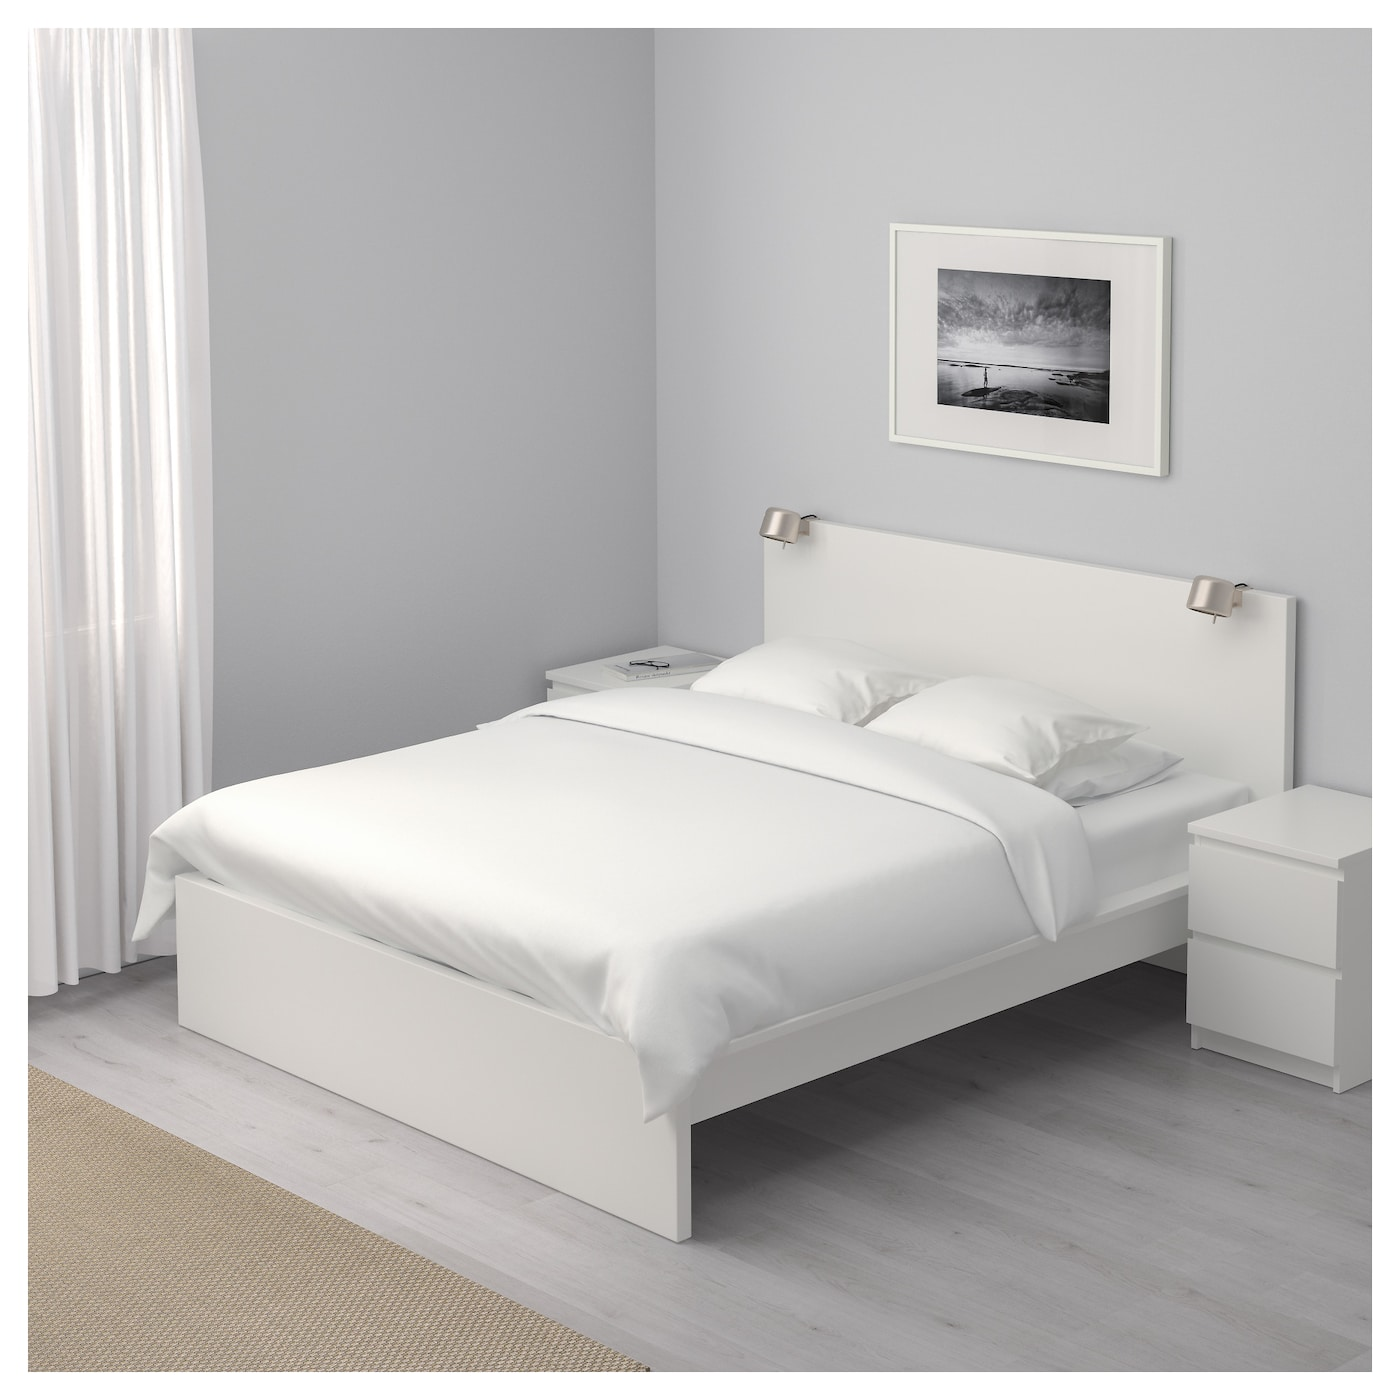 malm bed frame high white lur y standard double ikea. Black Bedroom Furniture Sets. Home Design Ideas